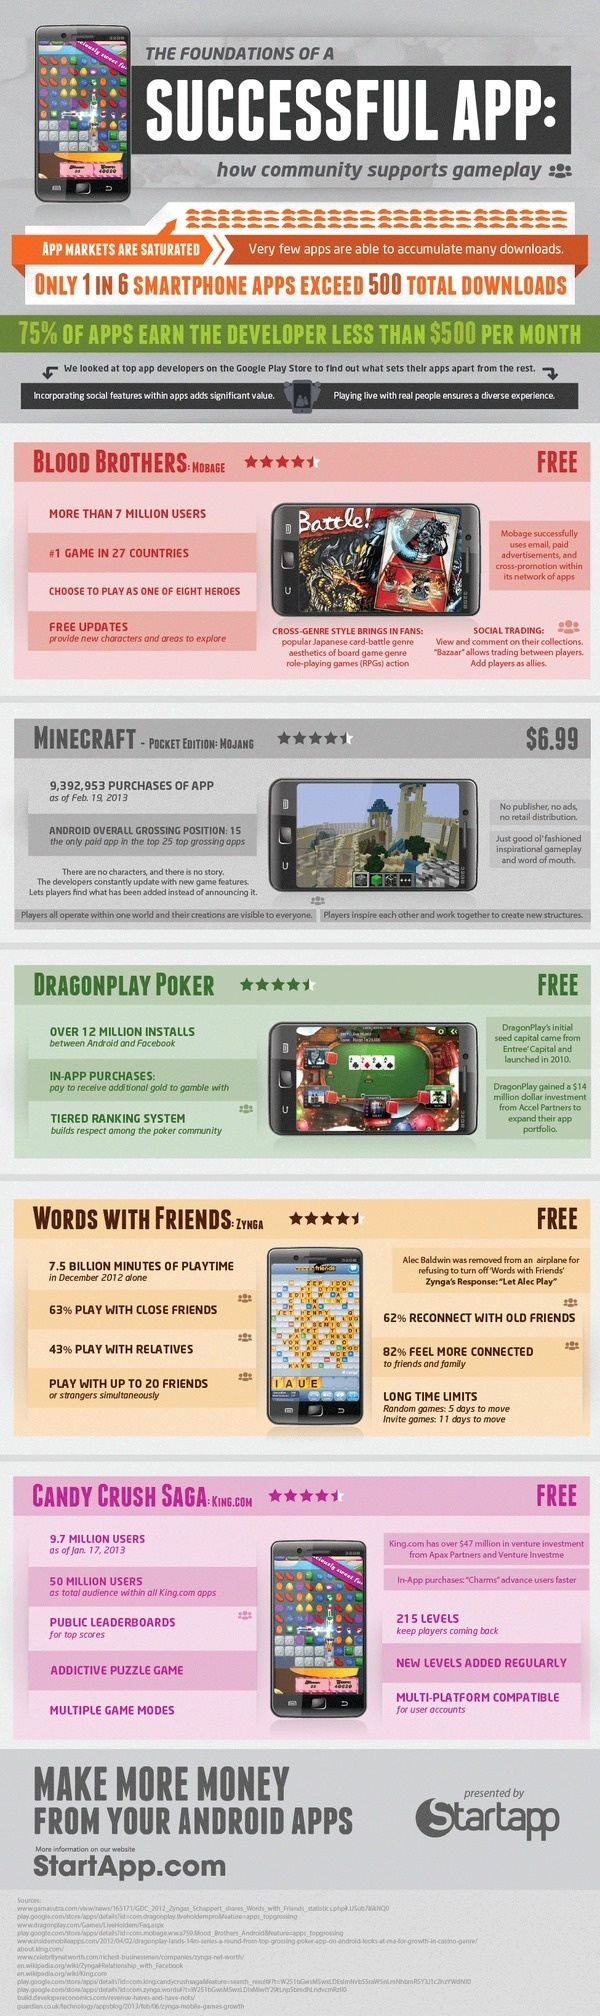 Top Grossing Android Apps #infographic